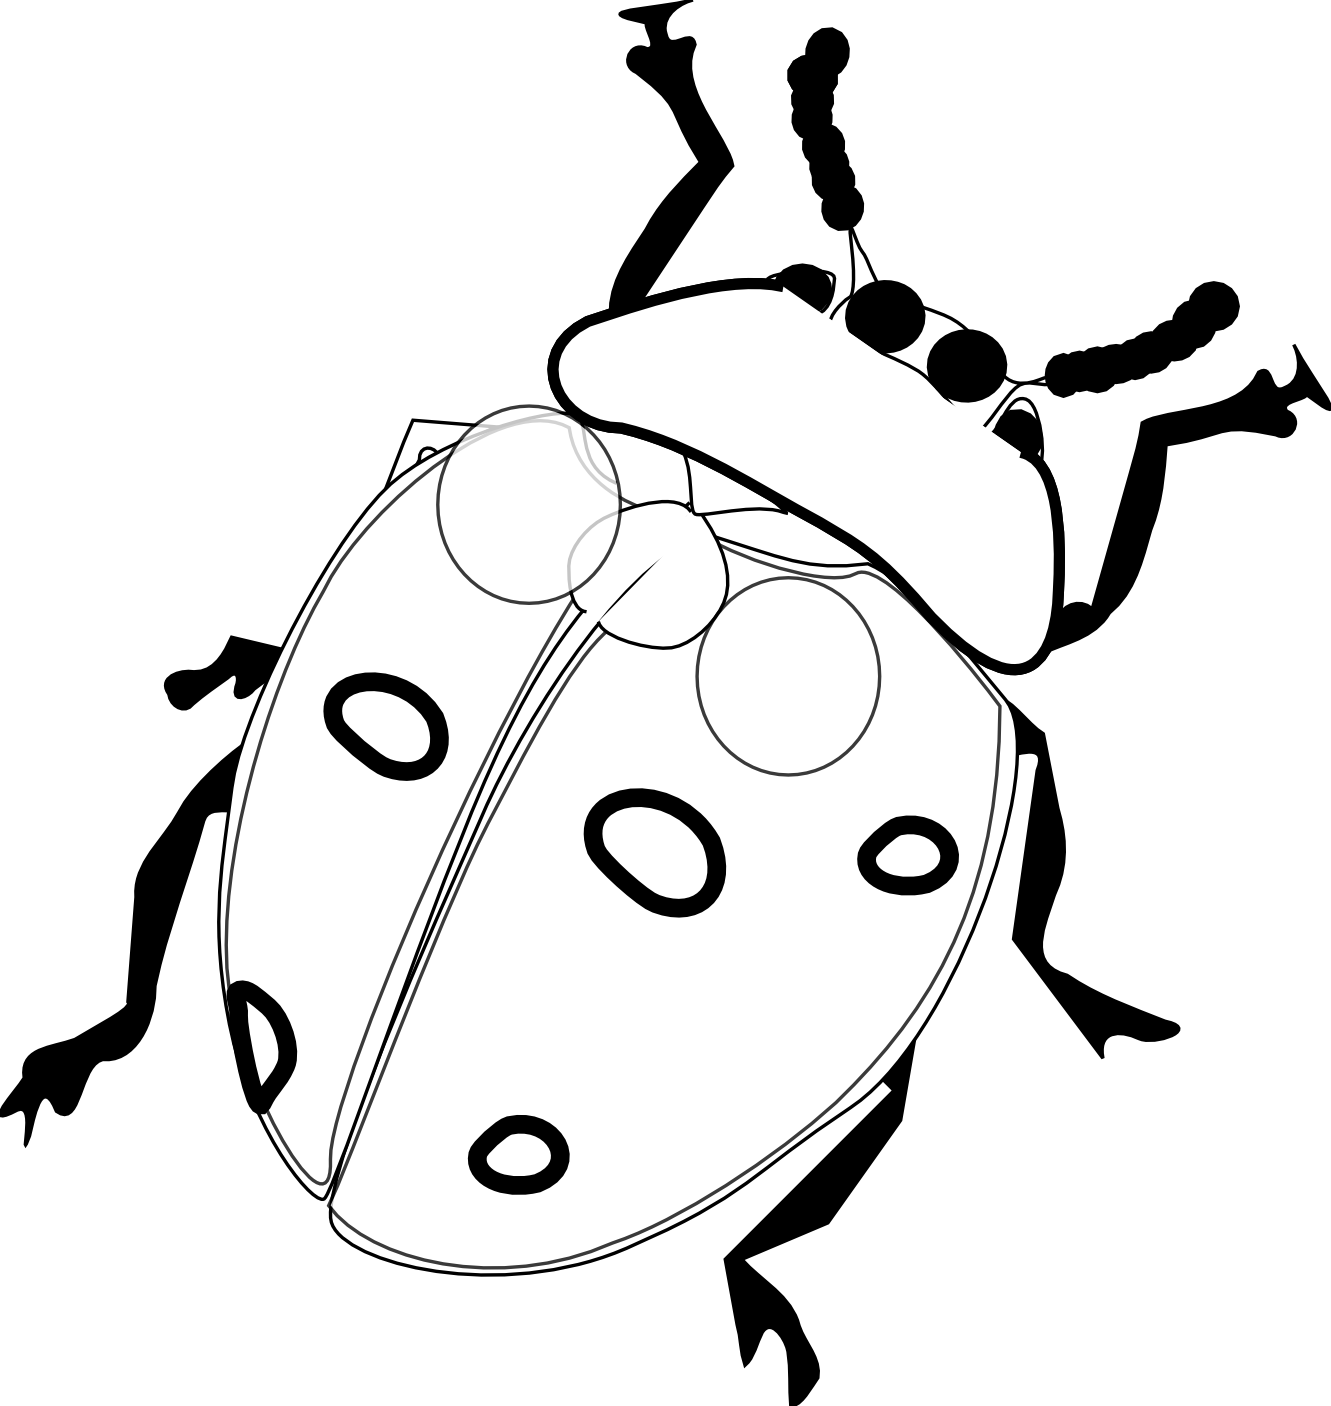 Line Drawing Lady : Ladybug drawing black and white clipart panda free